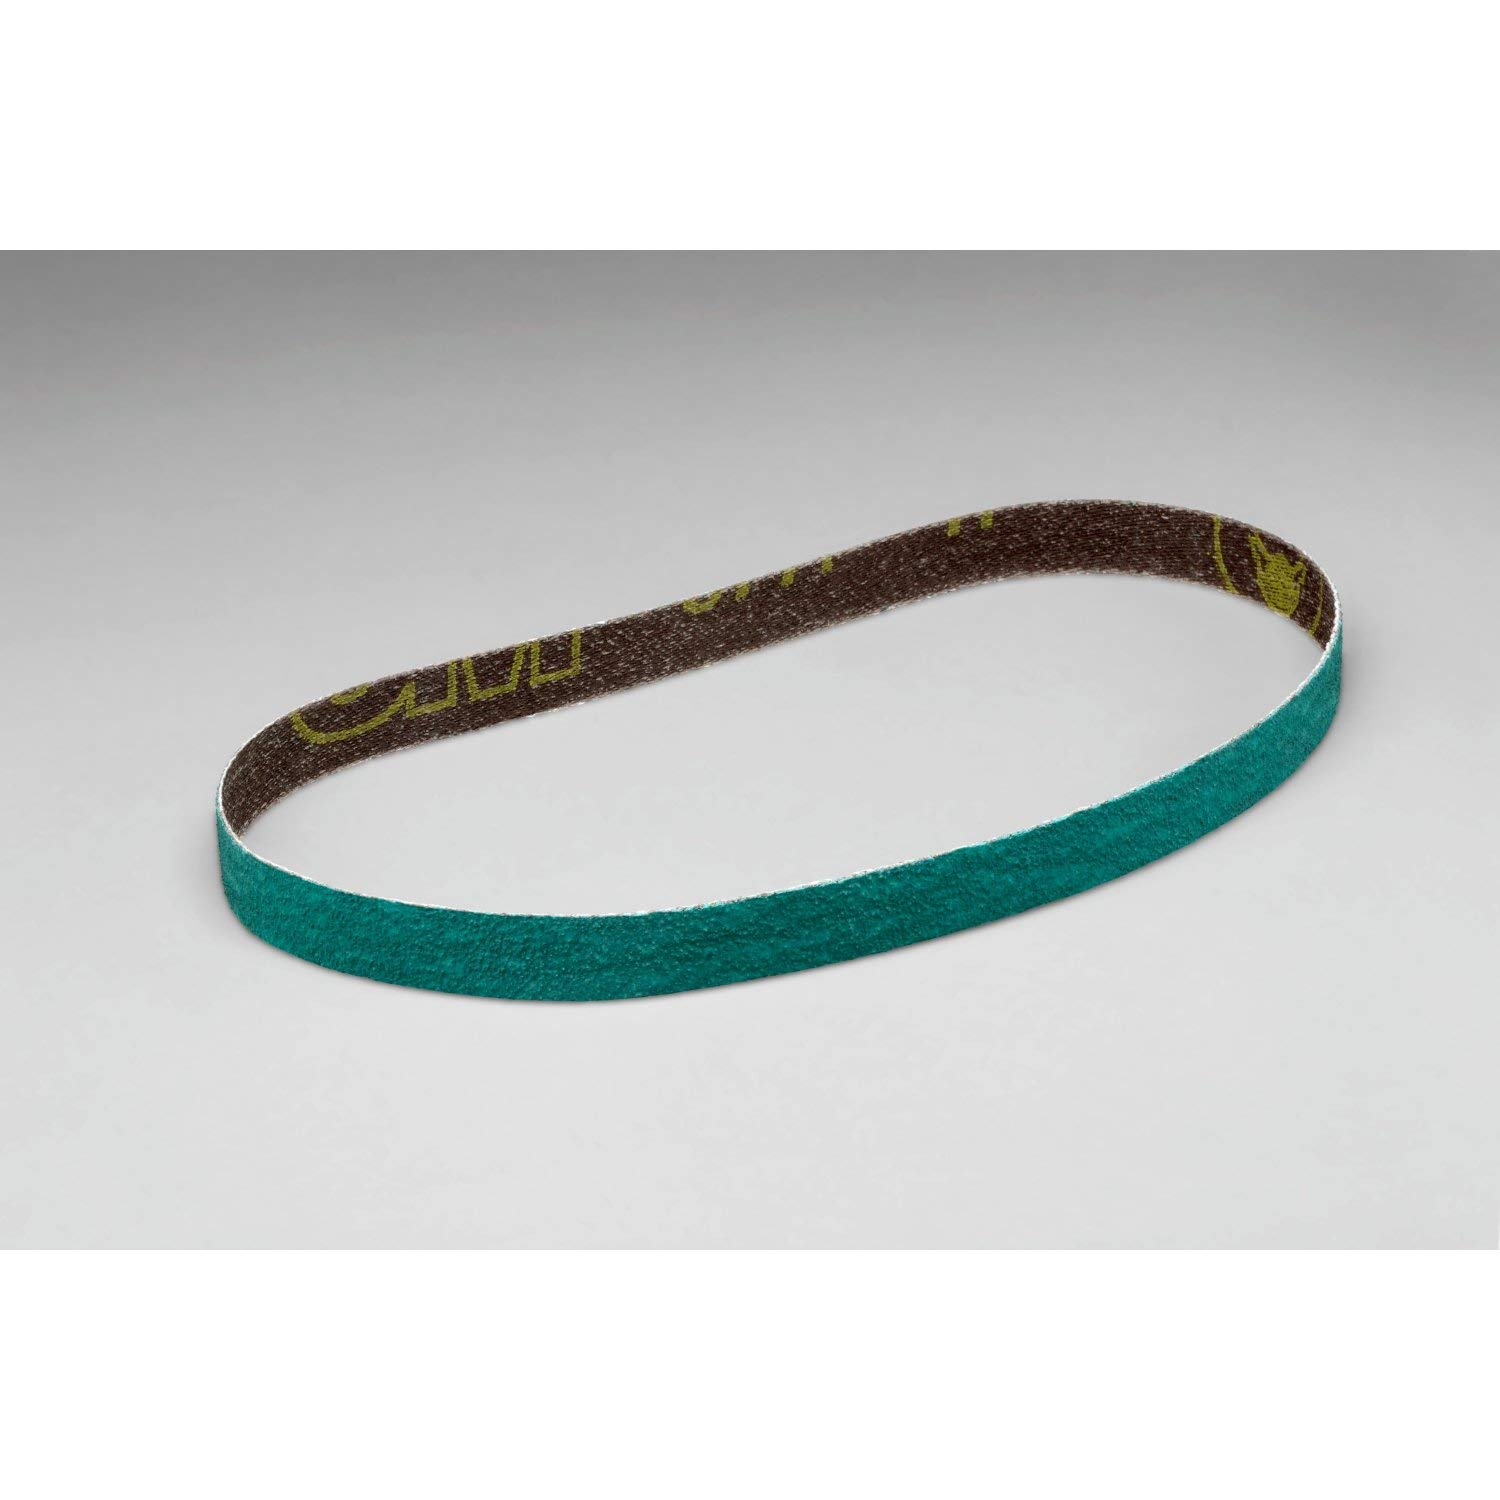 3M Cloth Belt 577F, 36 YF-weight, 1/2 in x 24 in, Fabri-lok, Single-flex 61ycOtSKu6L._SL1500_